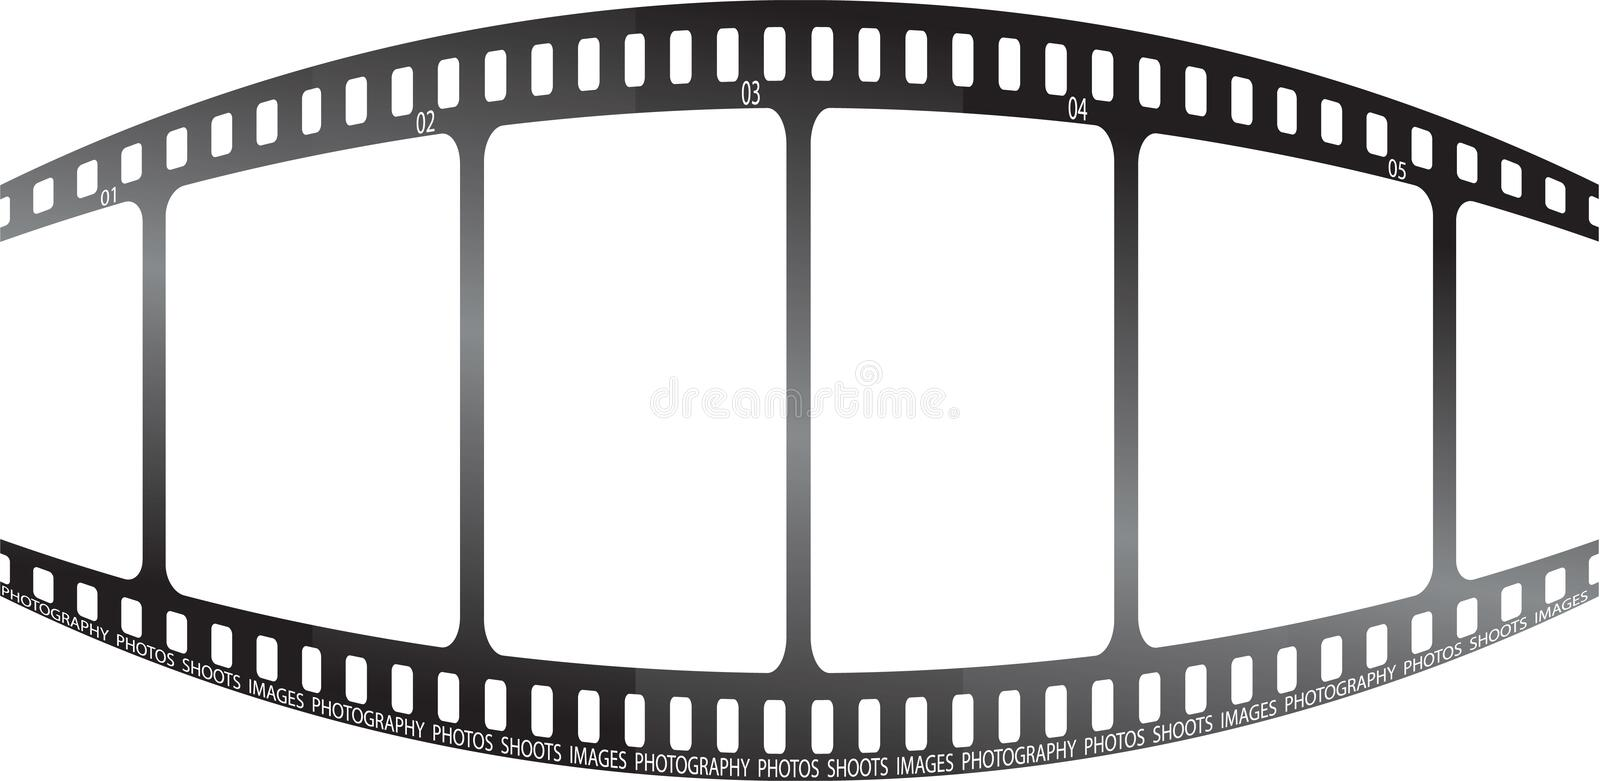 White film bulge. A film bulged in the middle ideal for place holder images vector illustration